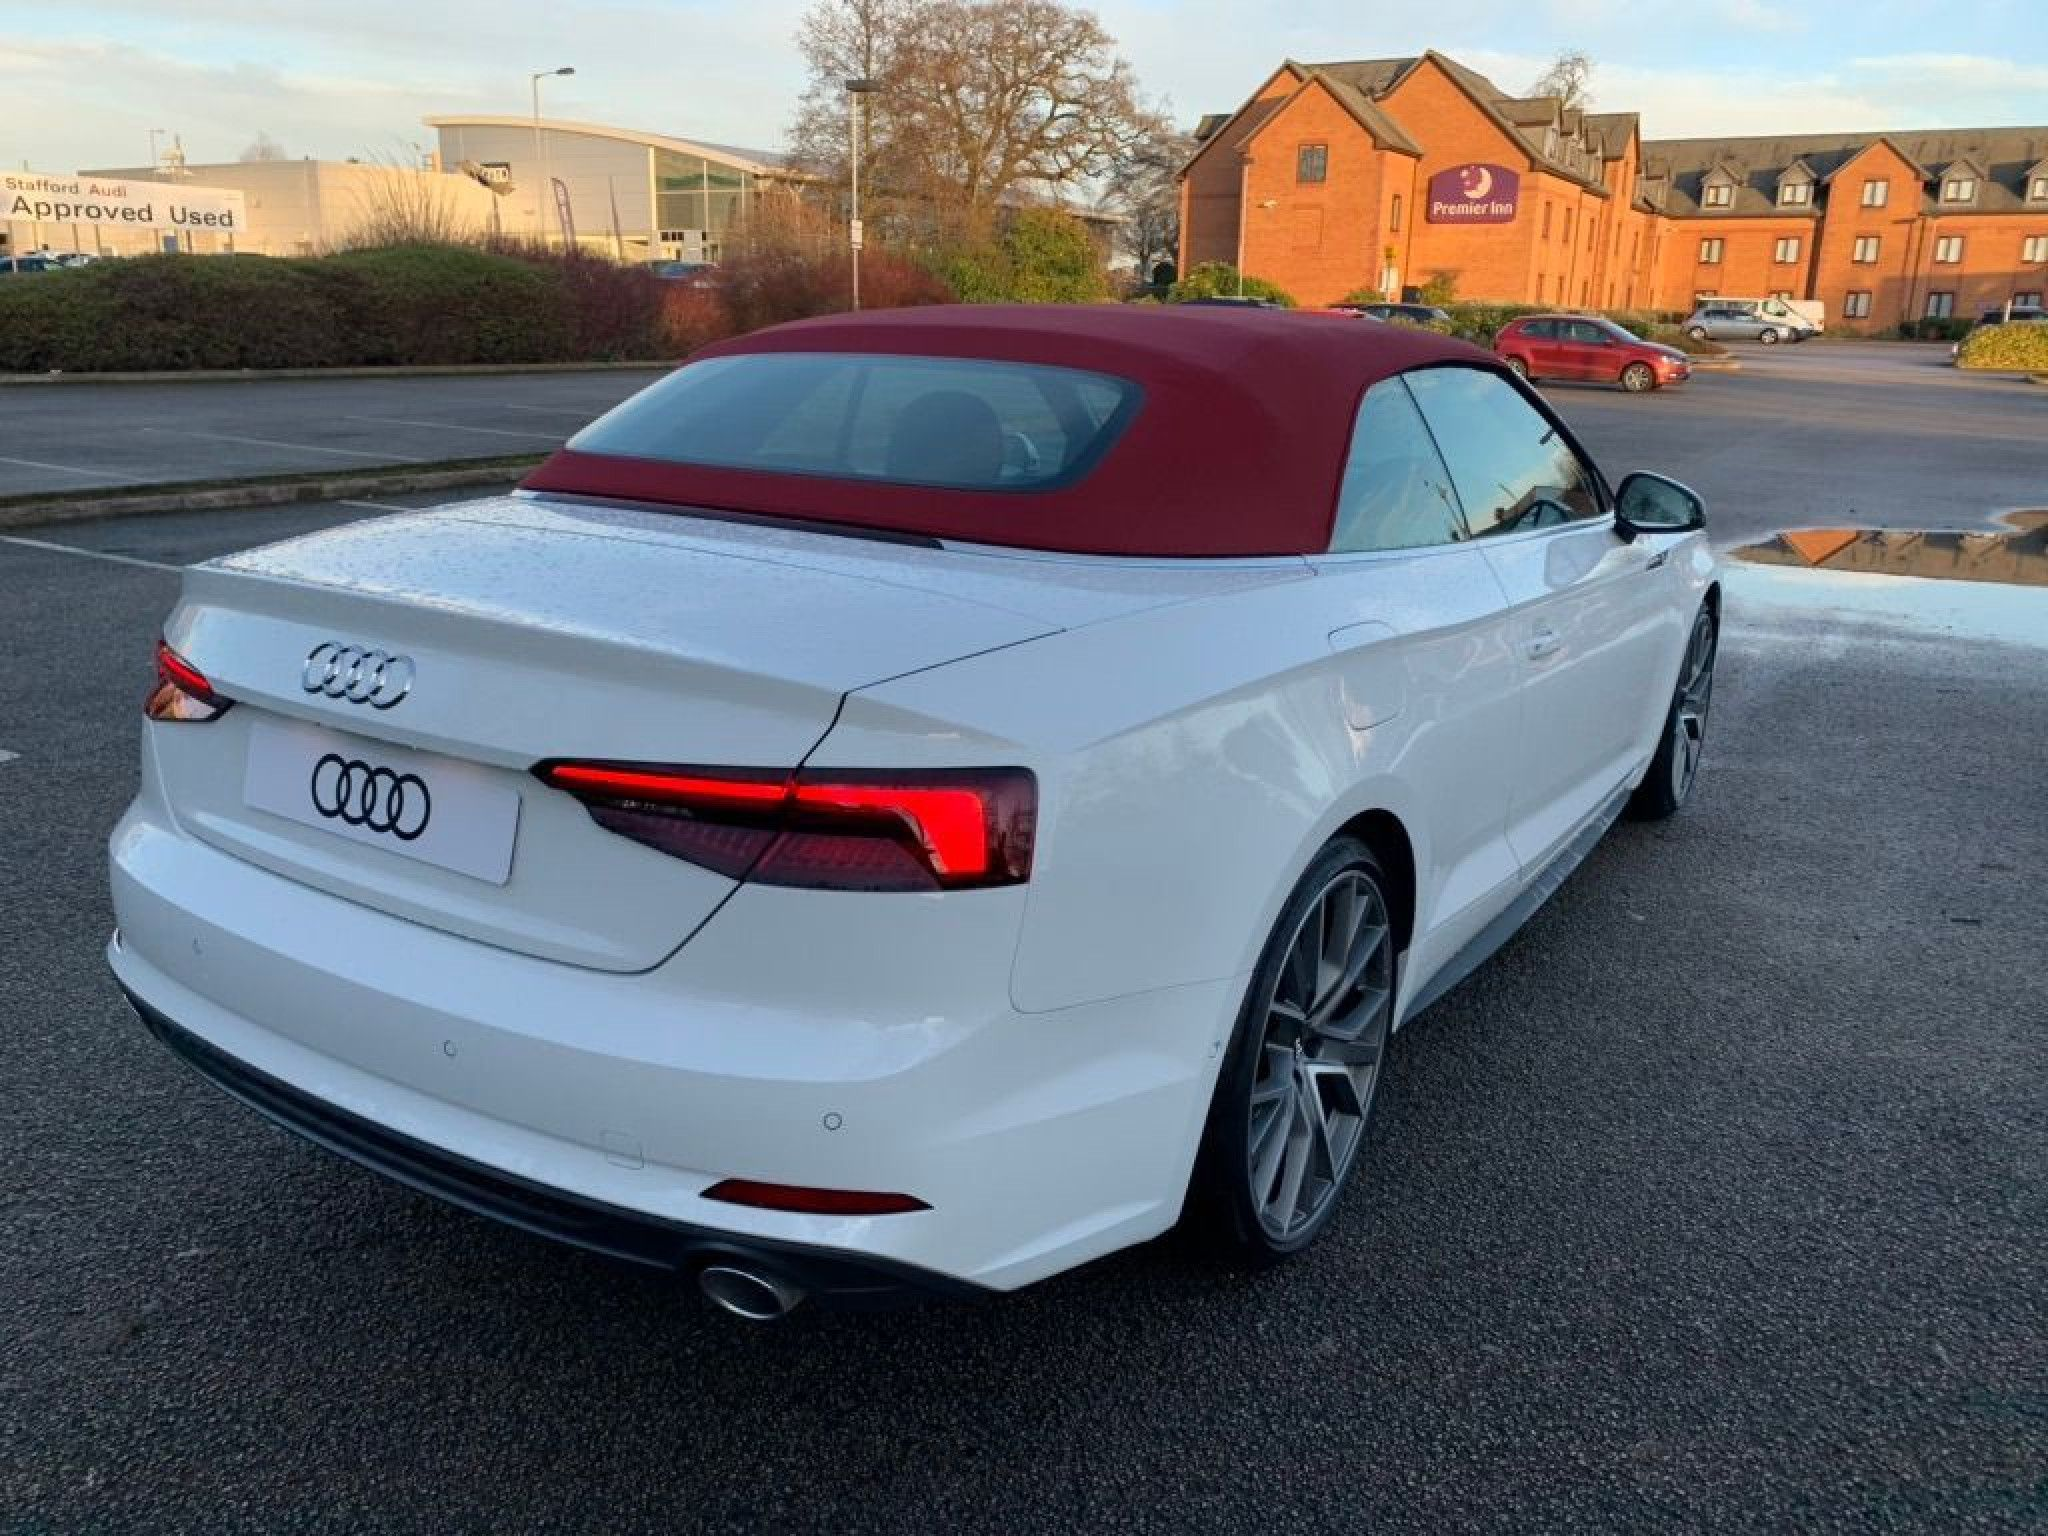 Audi A5 Cabriolet Vorsprung 40 Tfsi 190 Ps S Tronic In 2020 A5 Cabriolet Audi A5 Audi